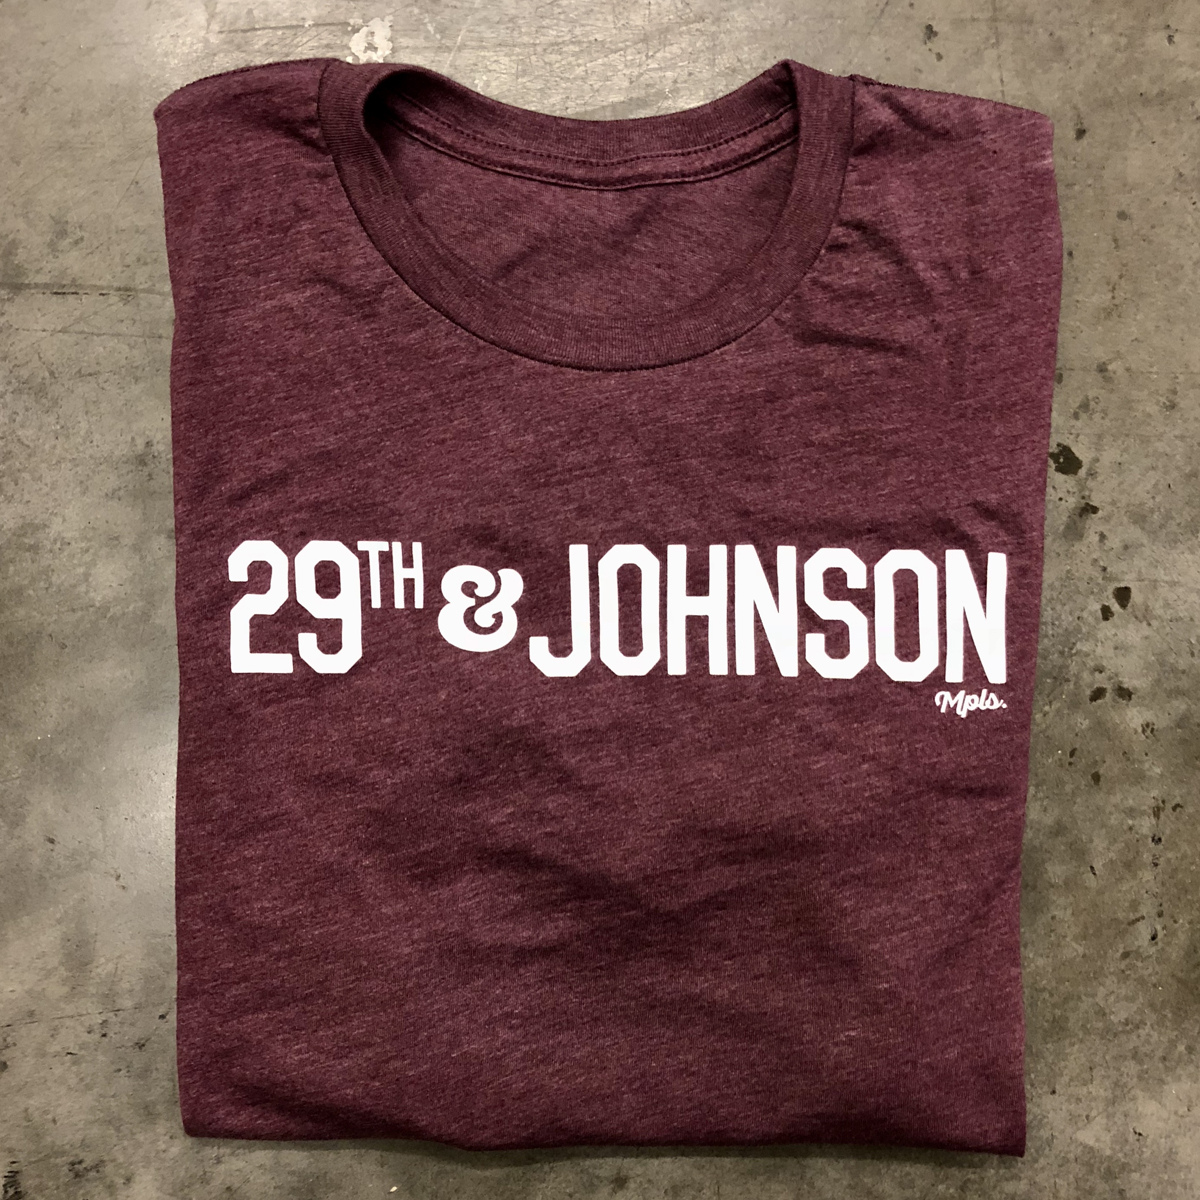 29th & Johnson Tee - Heather Maroon/White